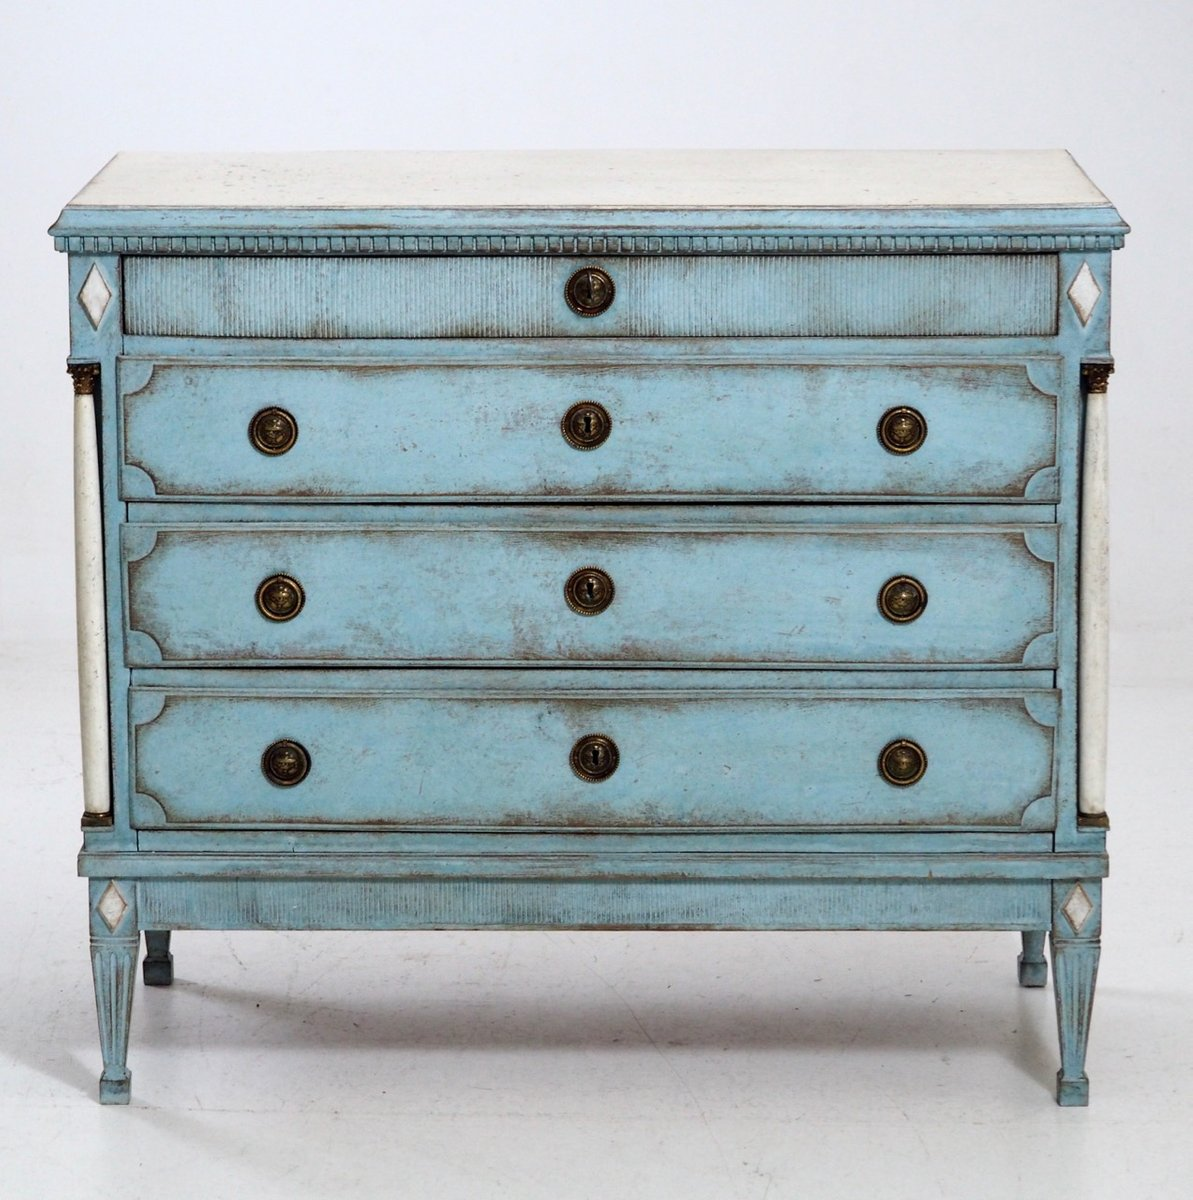 Antique Blue Gustavian Chest of Drawers - Antique Blue Gustavian Chest Of Drawers For Sale At Pamono